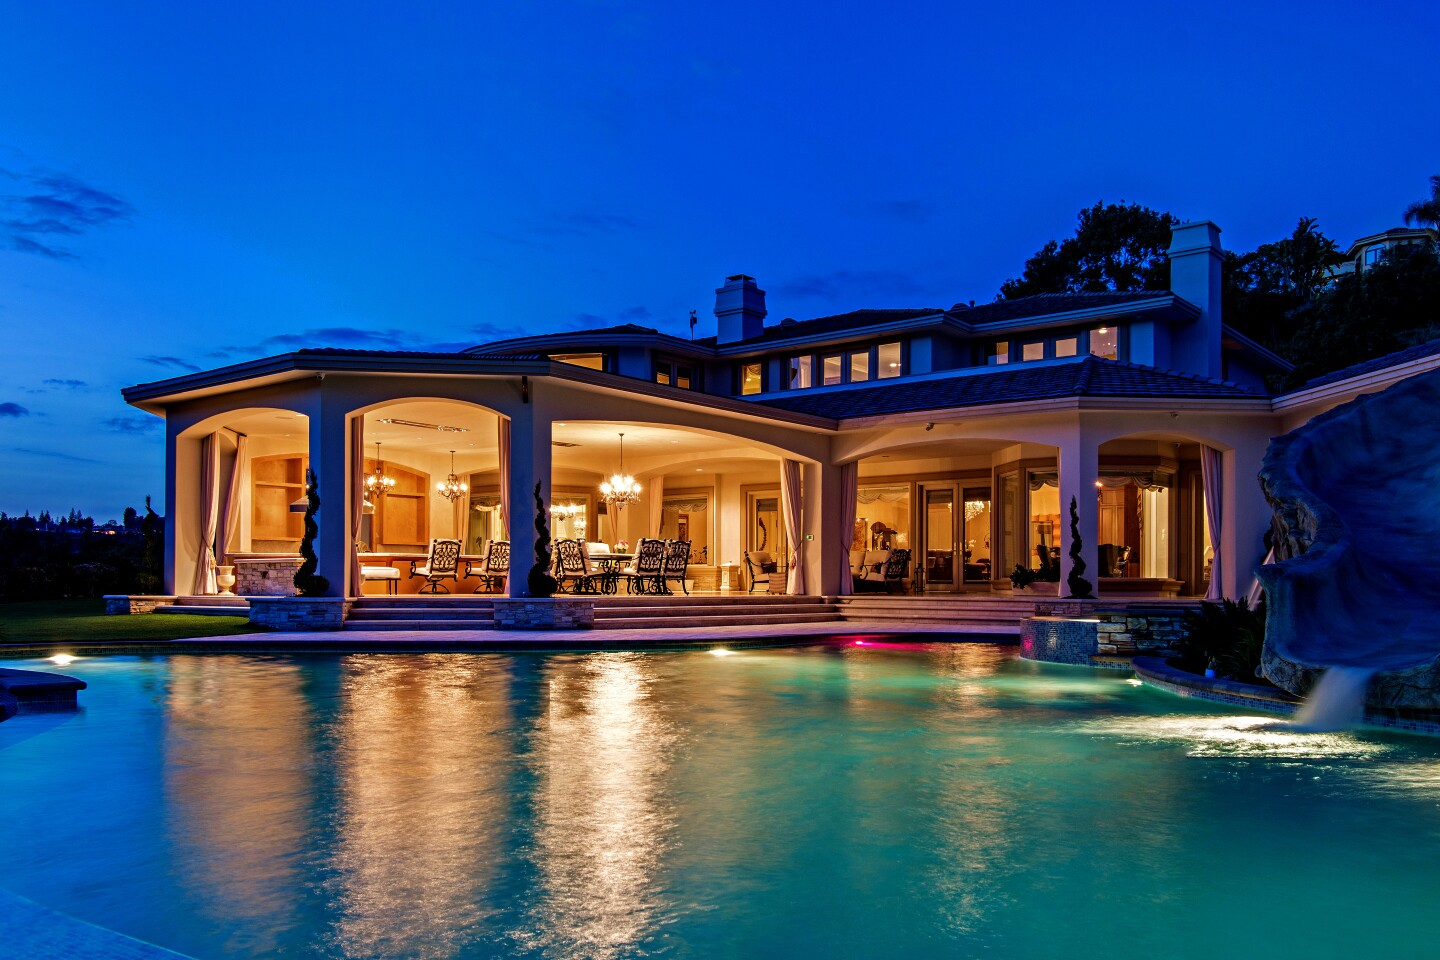 Lakers star Anthony Davis is shooting for $7.995 million for his Westlake Village home of two years. The Mediterranean-inspired estate sits behind gates on more than two acres with a resort-style swimming pool and an indoor basketball gym. The roughly 16,000-square-foot home opens to a two-story foyer with a sweeping staircase.